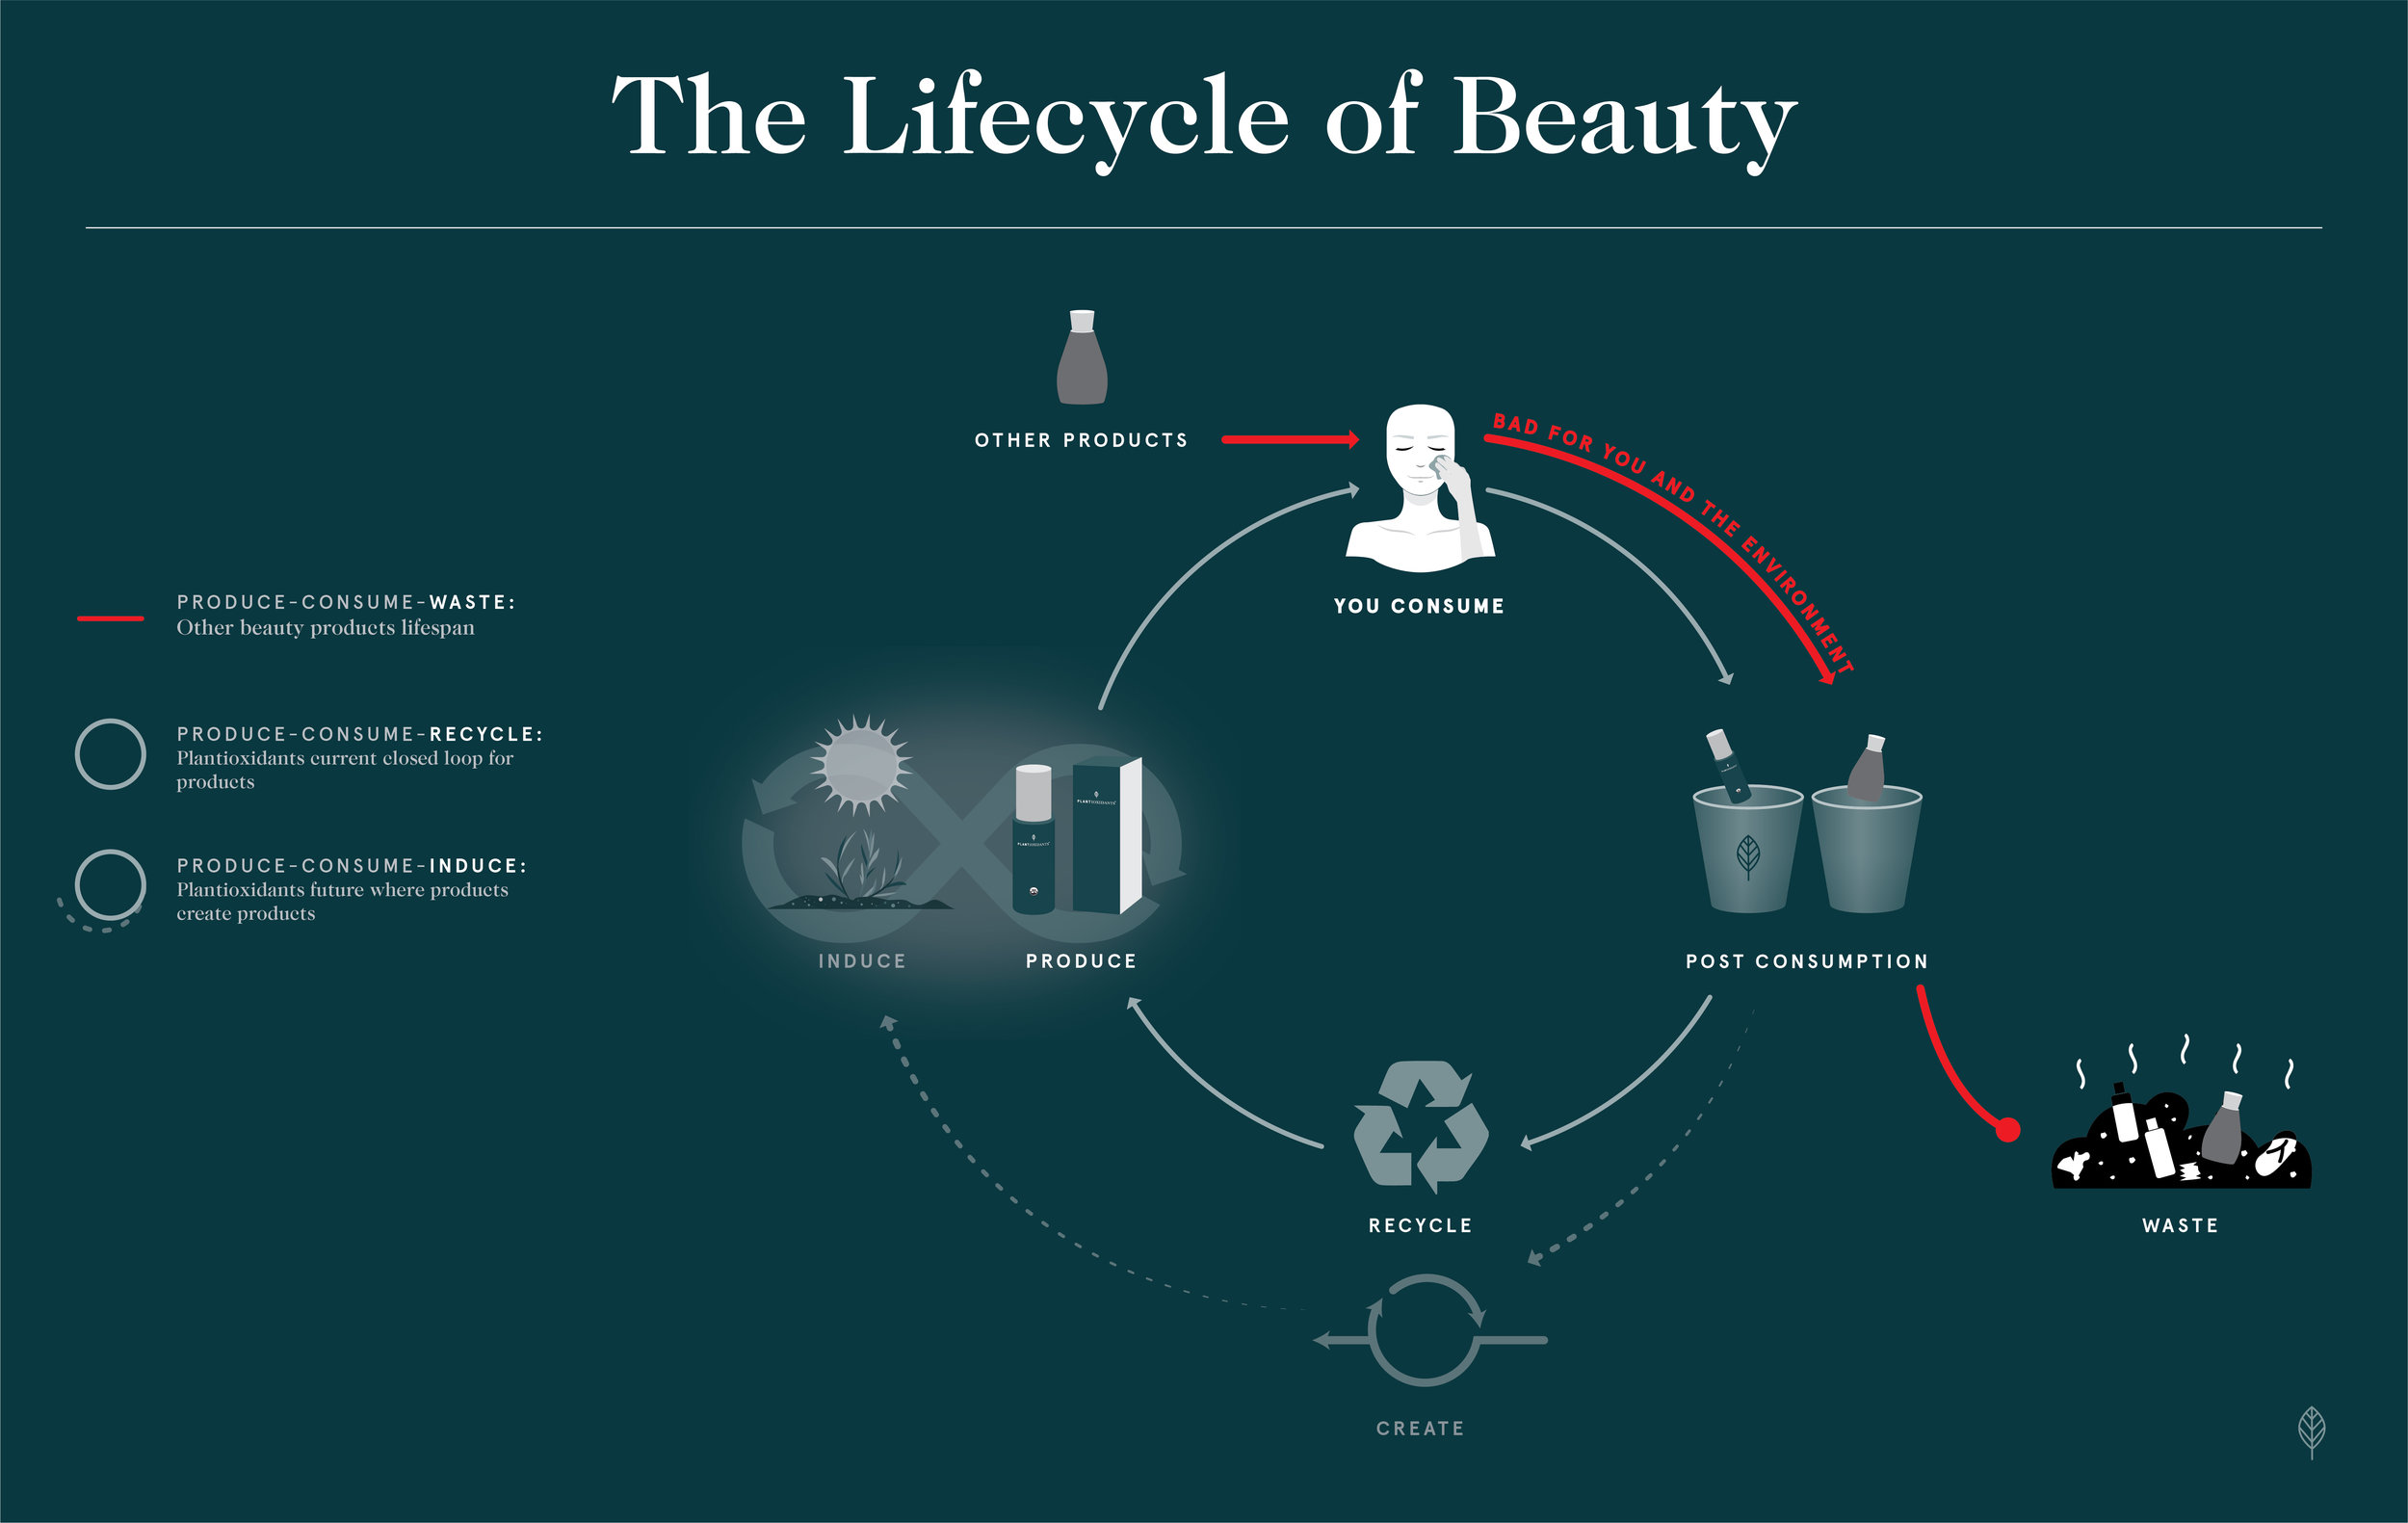 lifecycle of beauty-10-10.jpg